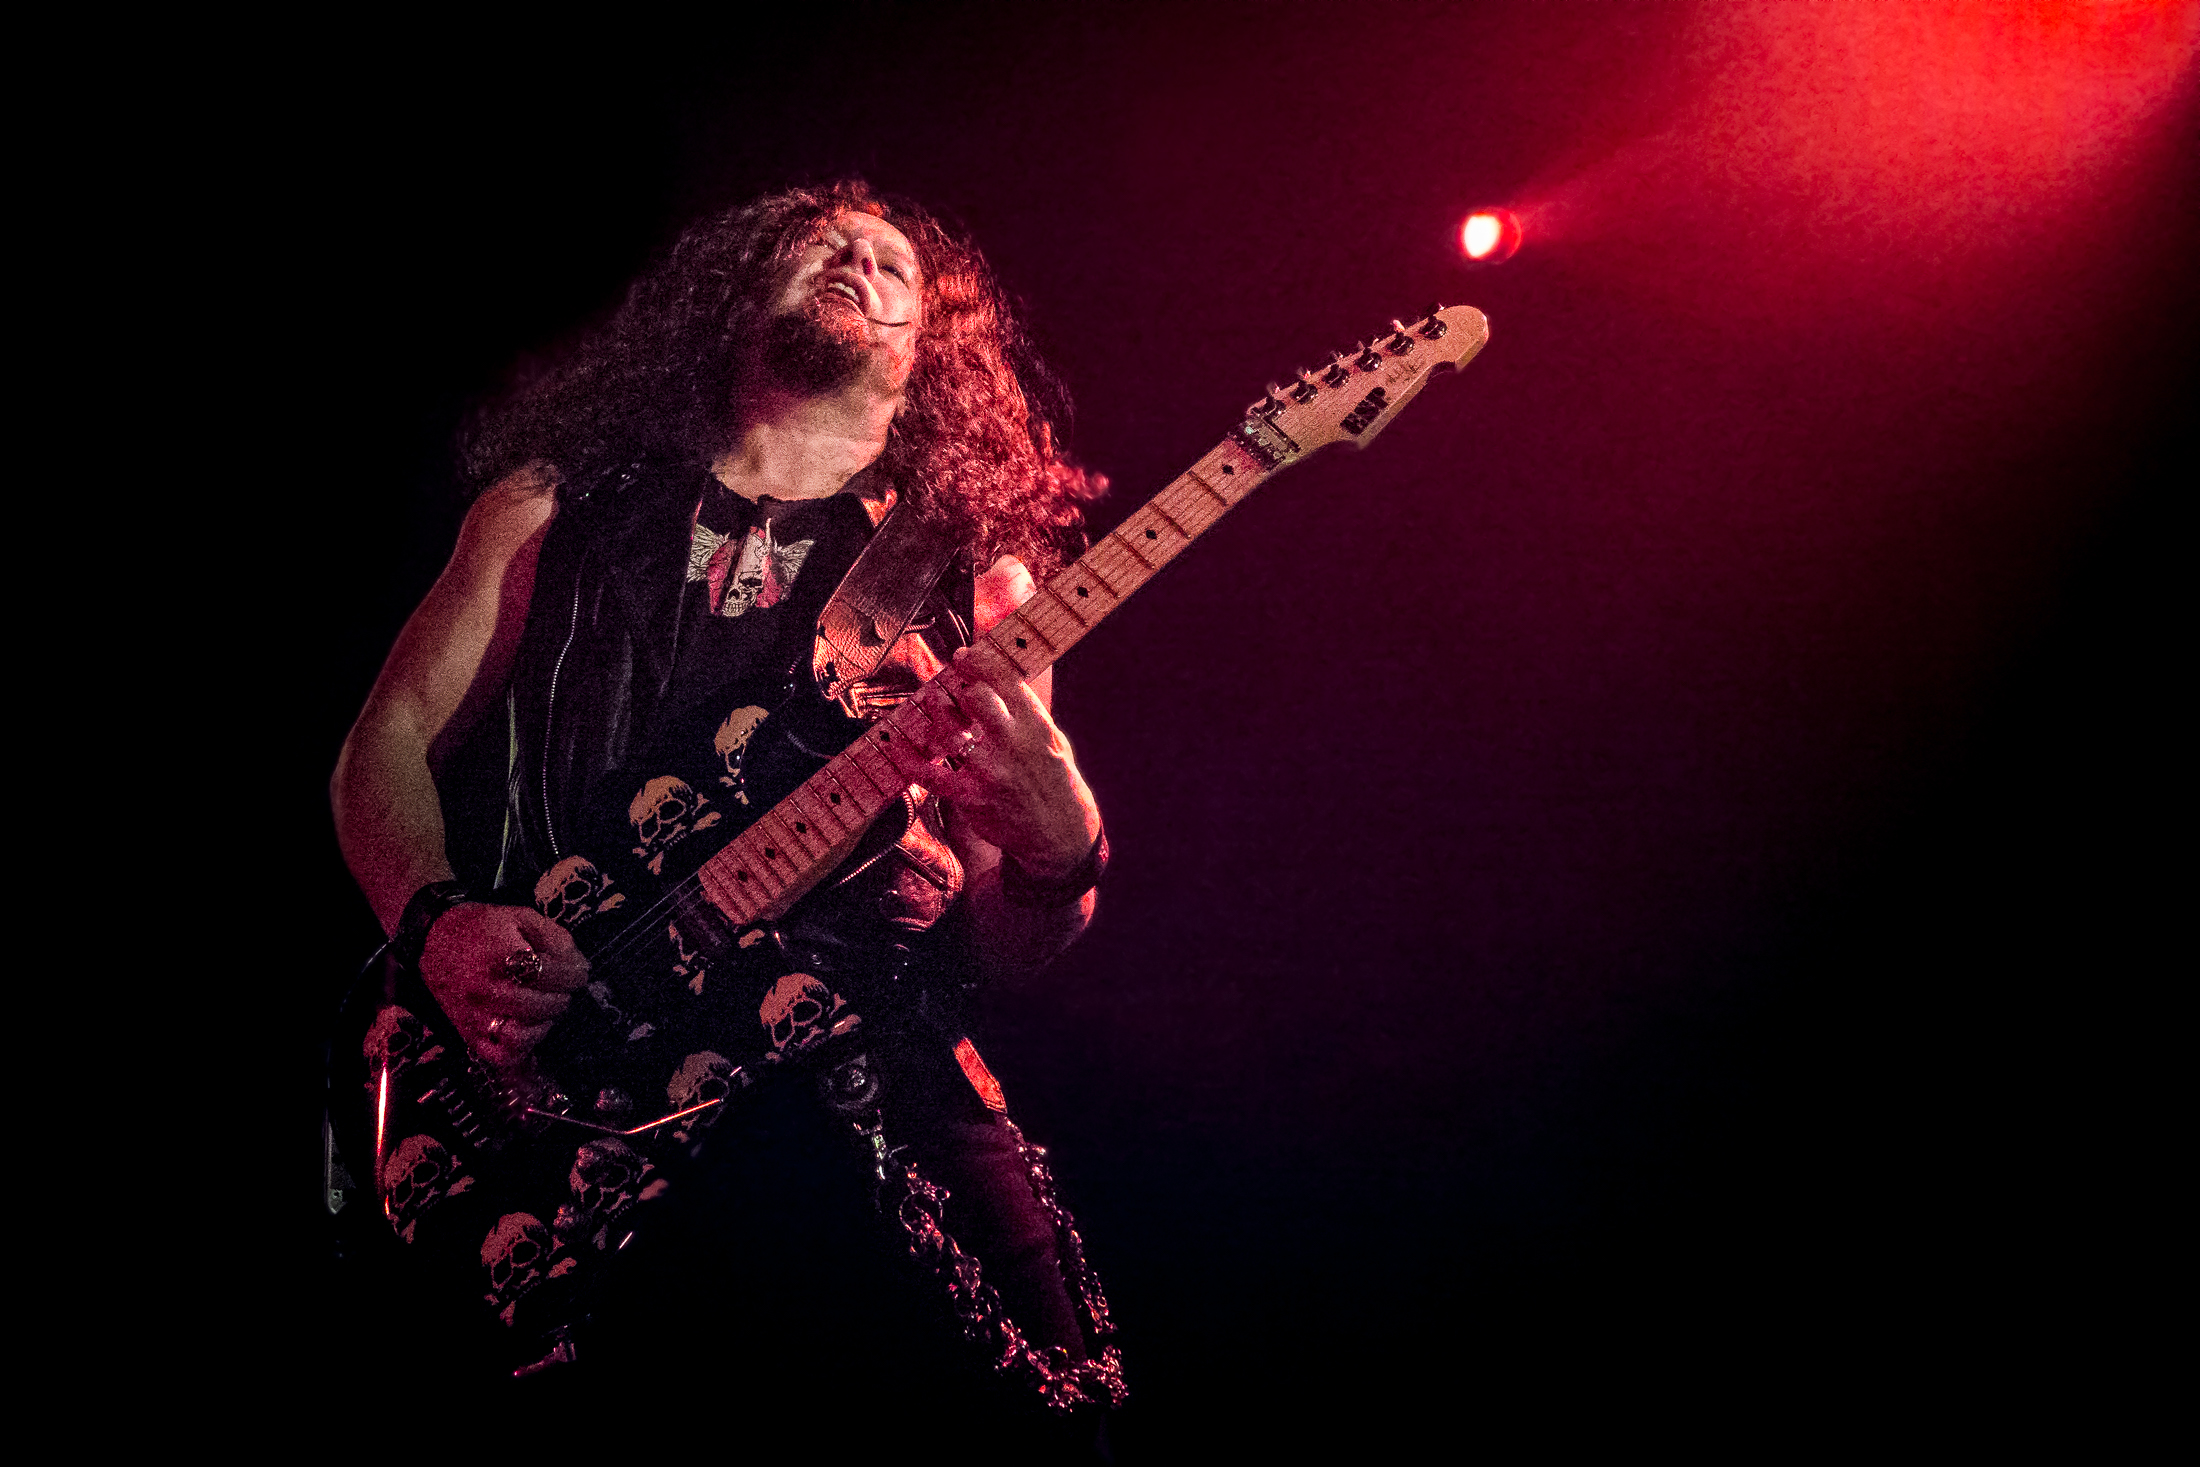 queensryche - melbourne - 2016 - paul tadday photography - 40.jpg